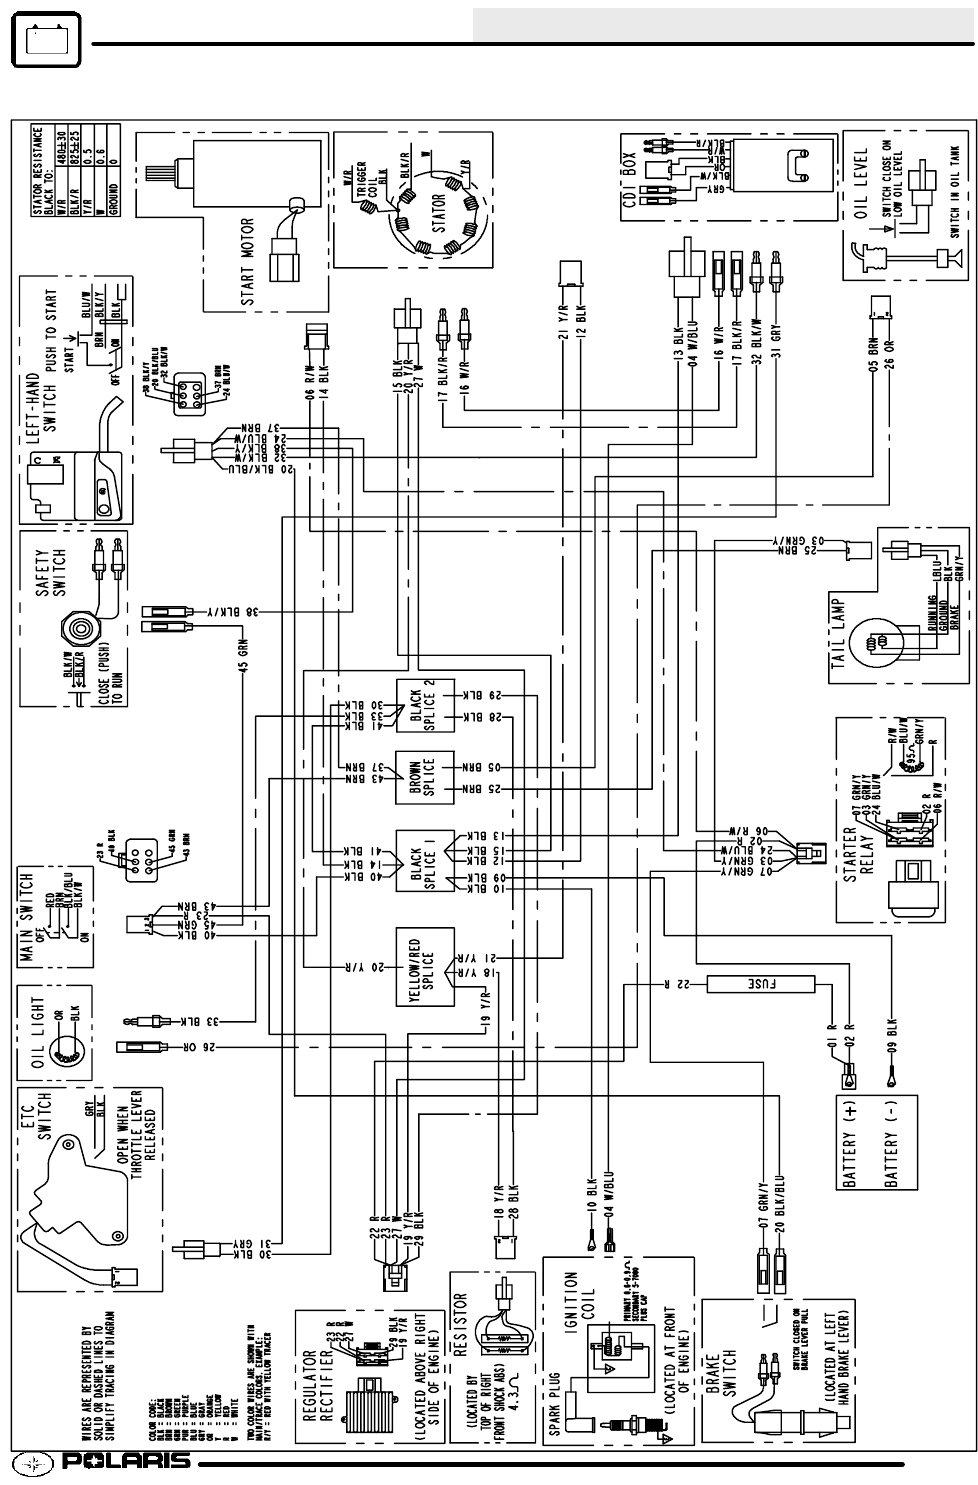 Wire Diagram Honda Civic Ignition Switch Wiring Diagram 92 Honda Civic